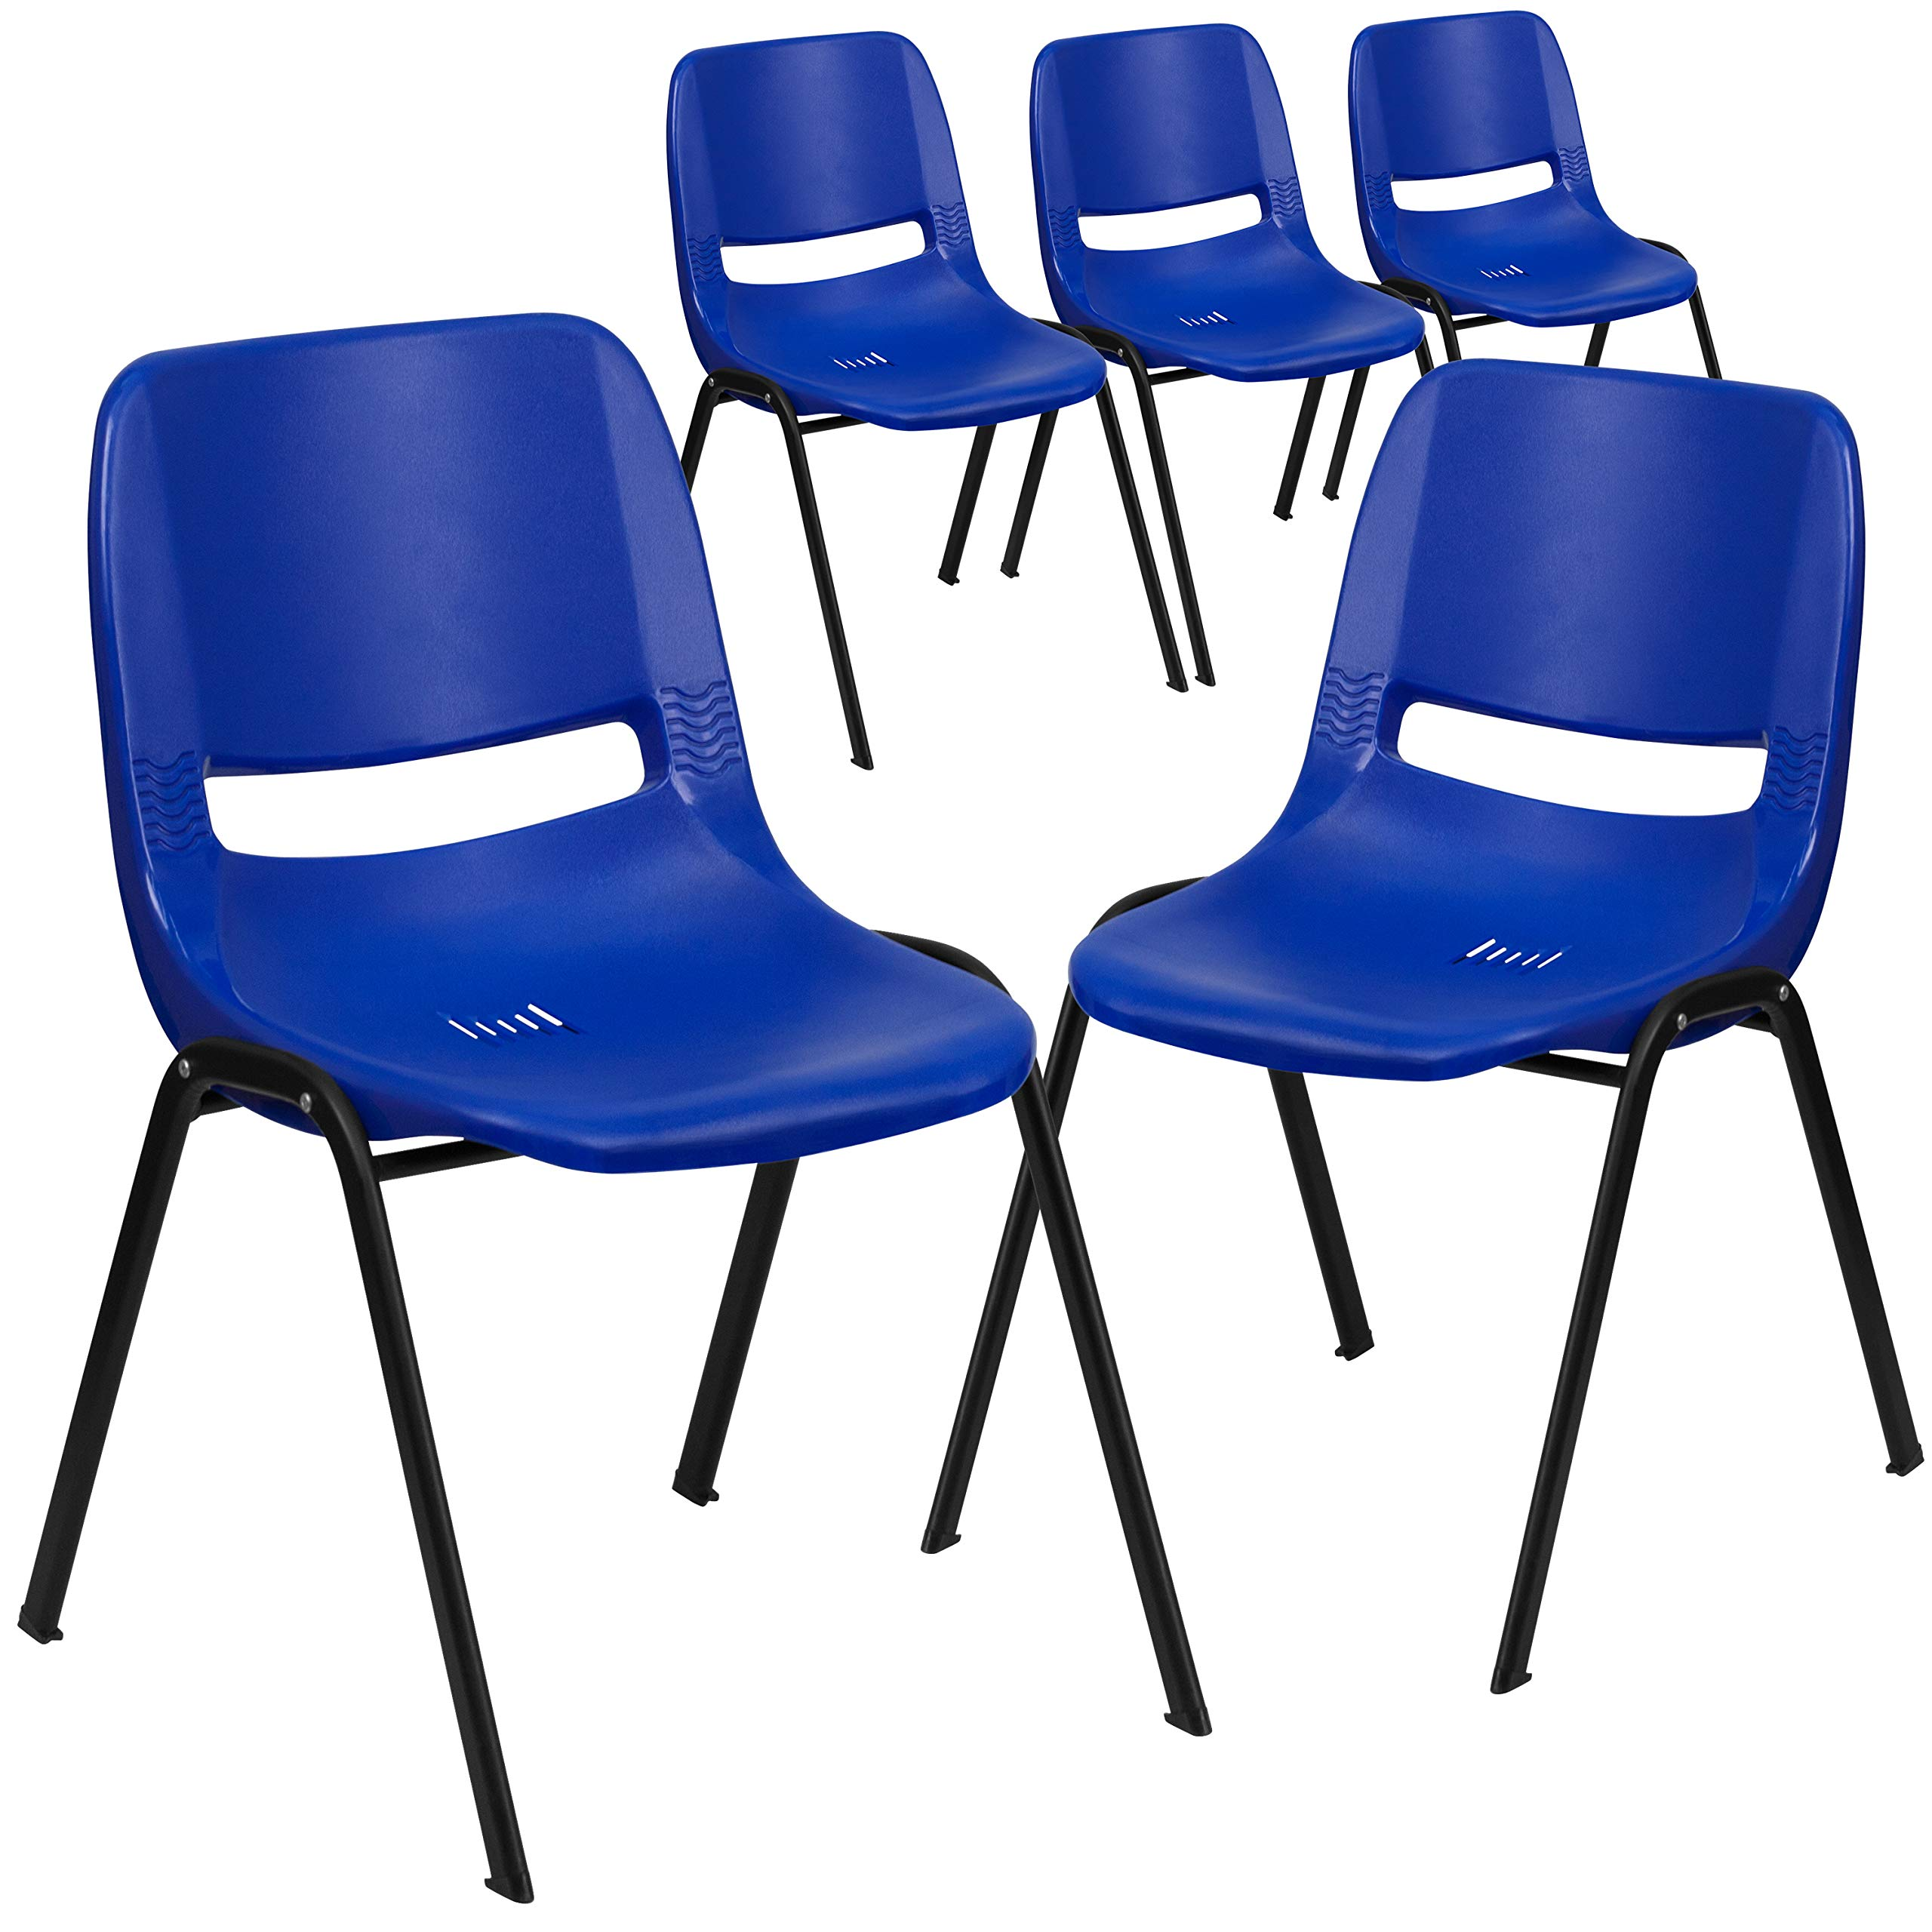 Flash Furniture 5 Pk. HERCULES Series 440 lb. Capacity Navy Ergonomic Shell Stack Chair with Black Frame and 14'' Seat Height